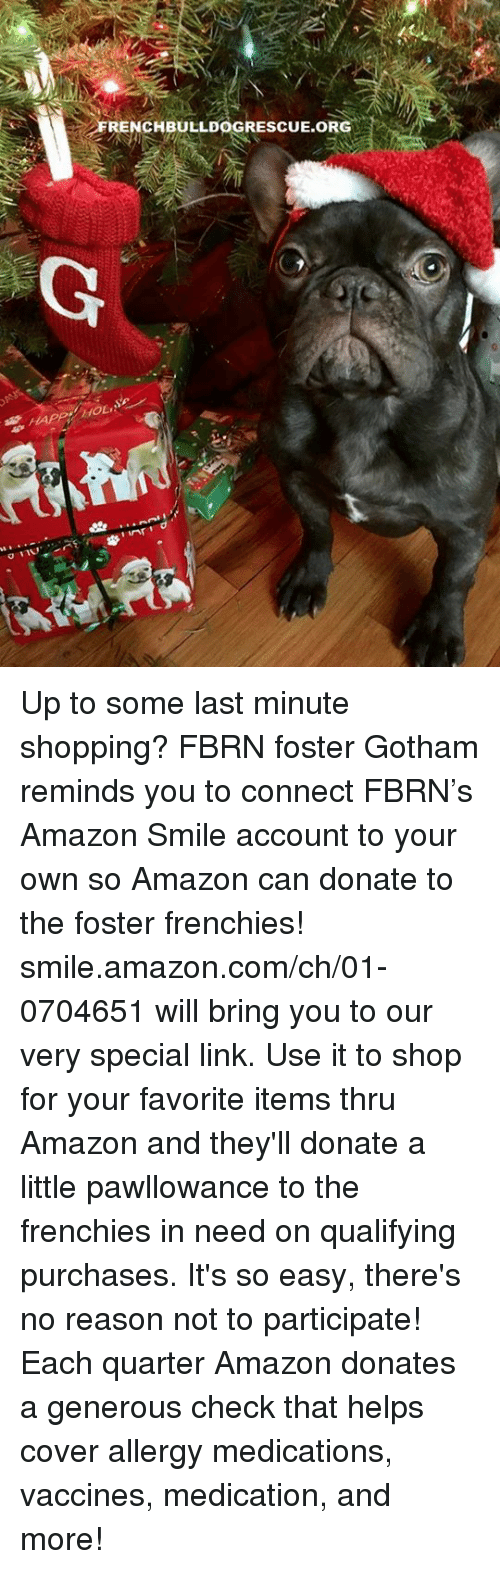 Amazon, Memes, and amazon.com: ARENCBULLDOGRESCUE.ORG  G  HAPPerfoLAe.  011v,シ湃 r g/ inf!  H Up to some last minute shopping? FBRN foster Gotham reminds you to connect FBRN's Amazon Smile account to your own so Amazon can donate to the foster frenchies!   smile.amazon.com/ch/01-0704651 will bring you to our very special link. Use it to shop for your favorite items thru Amazon and they'll donate a little pawllowance to the frenchies in need on qualifying purchases. It's so easy, there's no reason not to participate! Each quarter Amazon donates a generous check that helps cover allergy medications, vaccines, medication, and more!